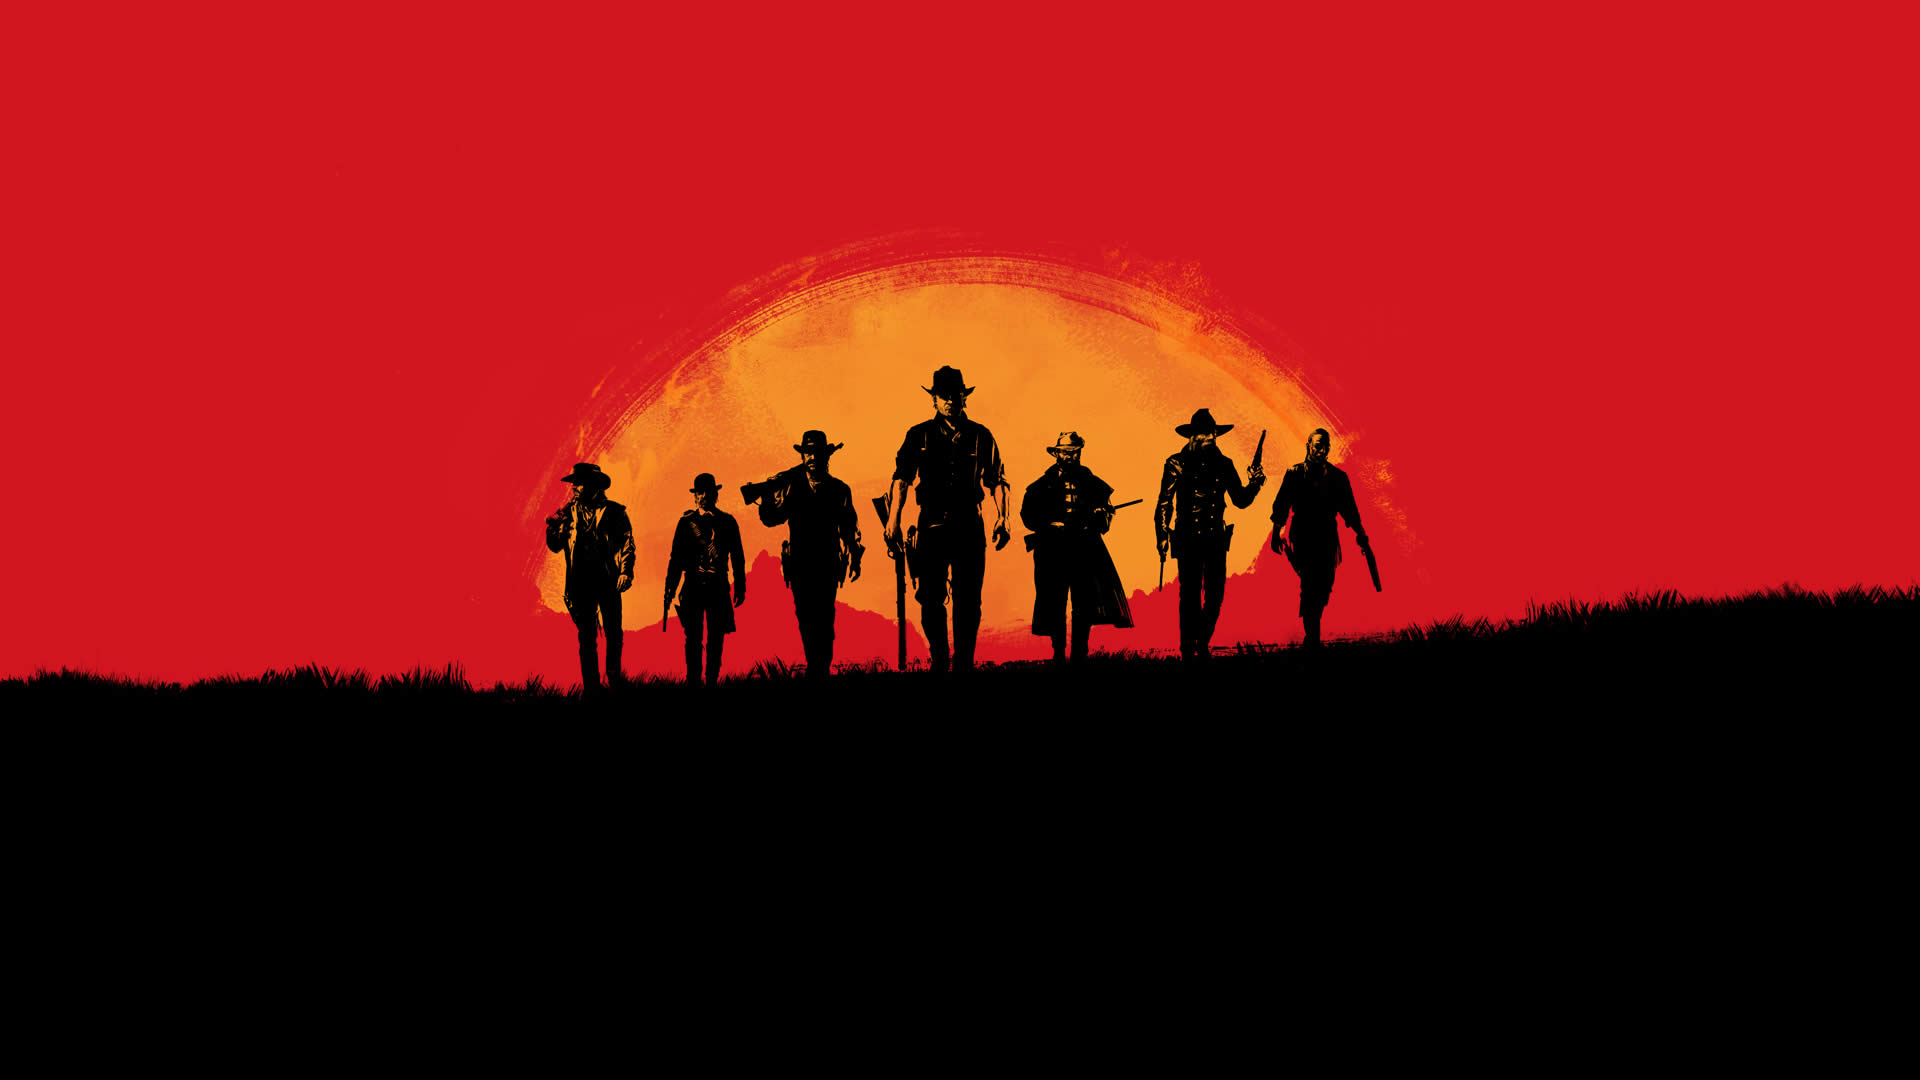 https://www.videogiocare.it/wp-content/uploads/2016/10/red-dead-redemption-2-1.jpg